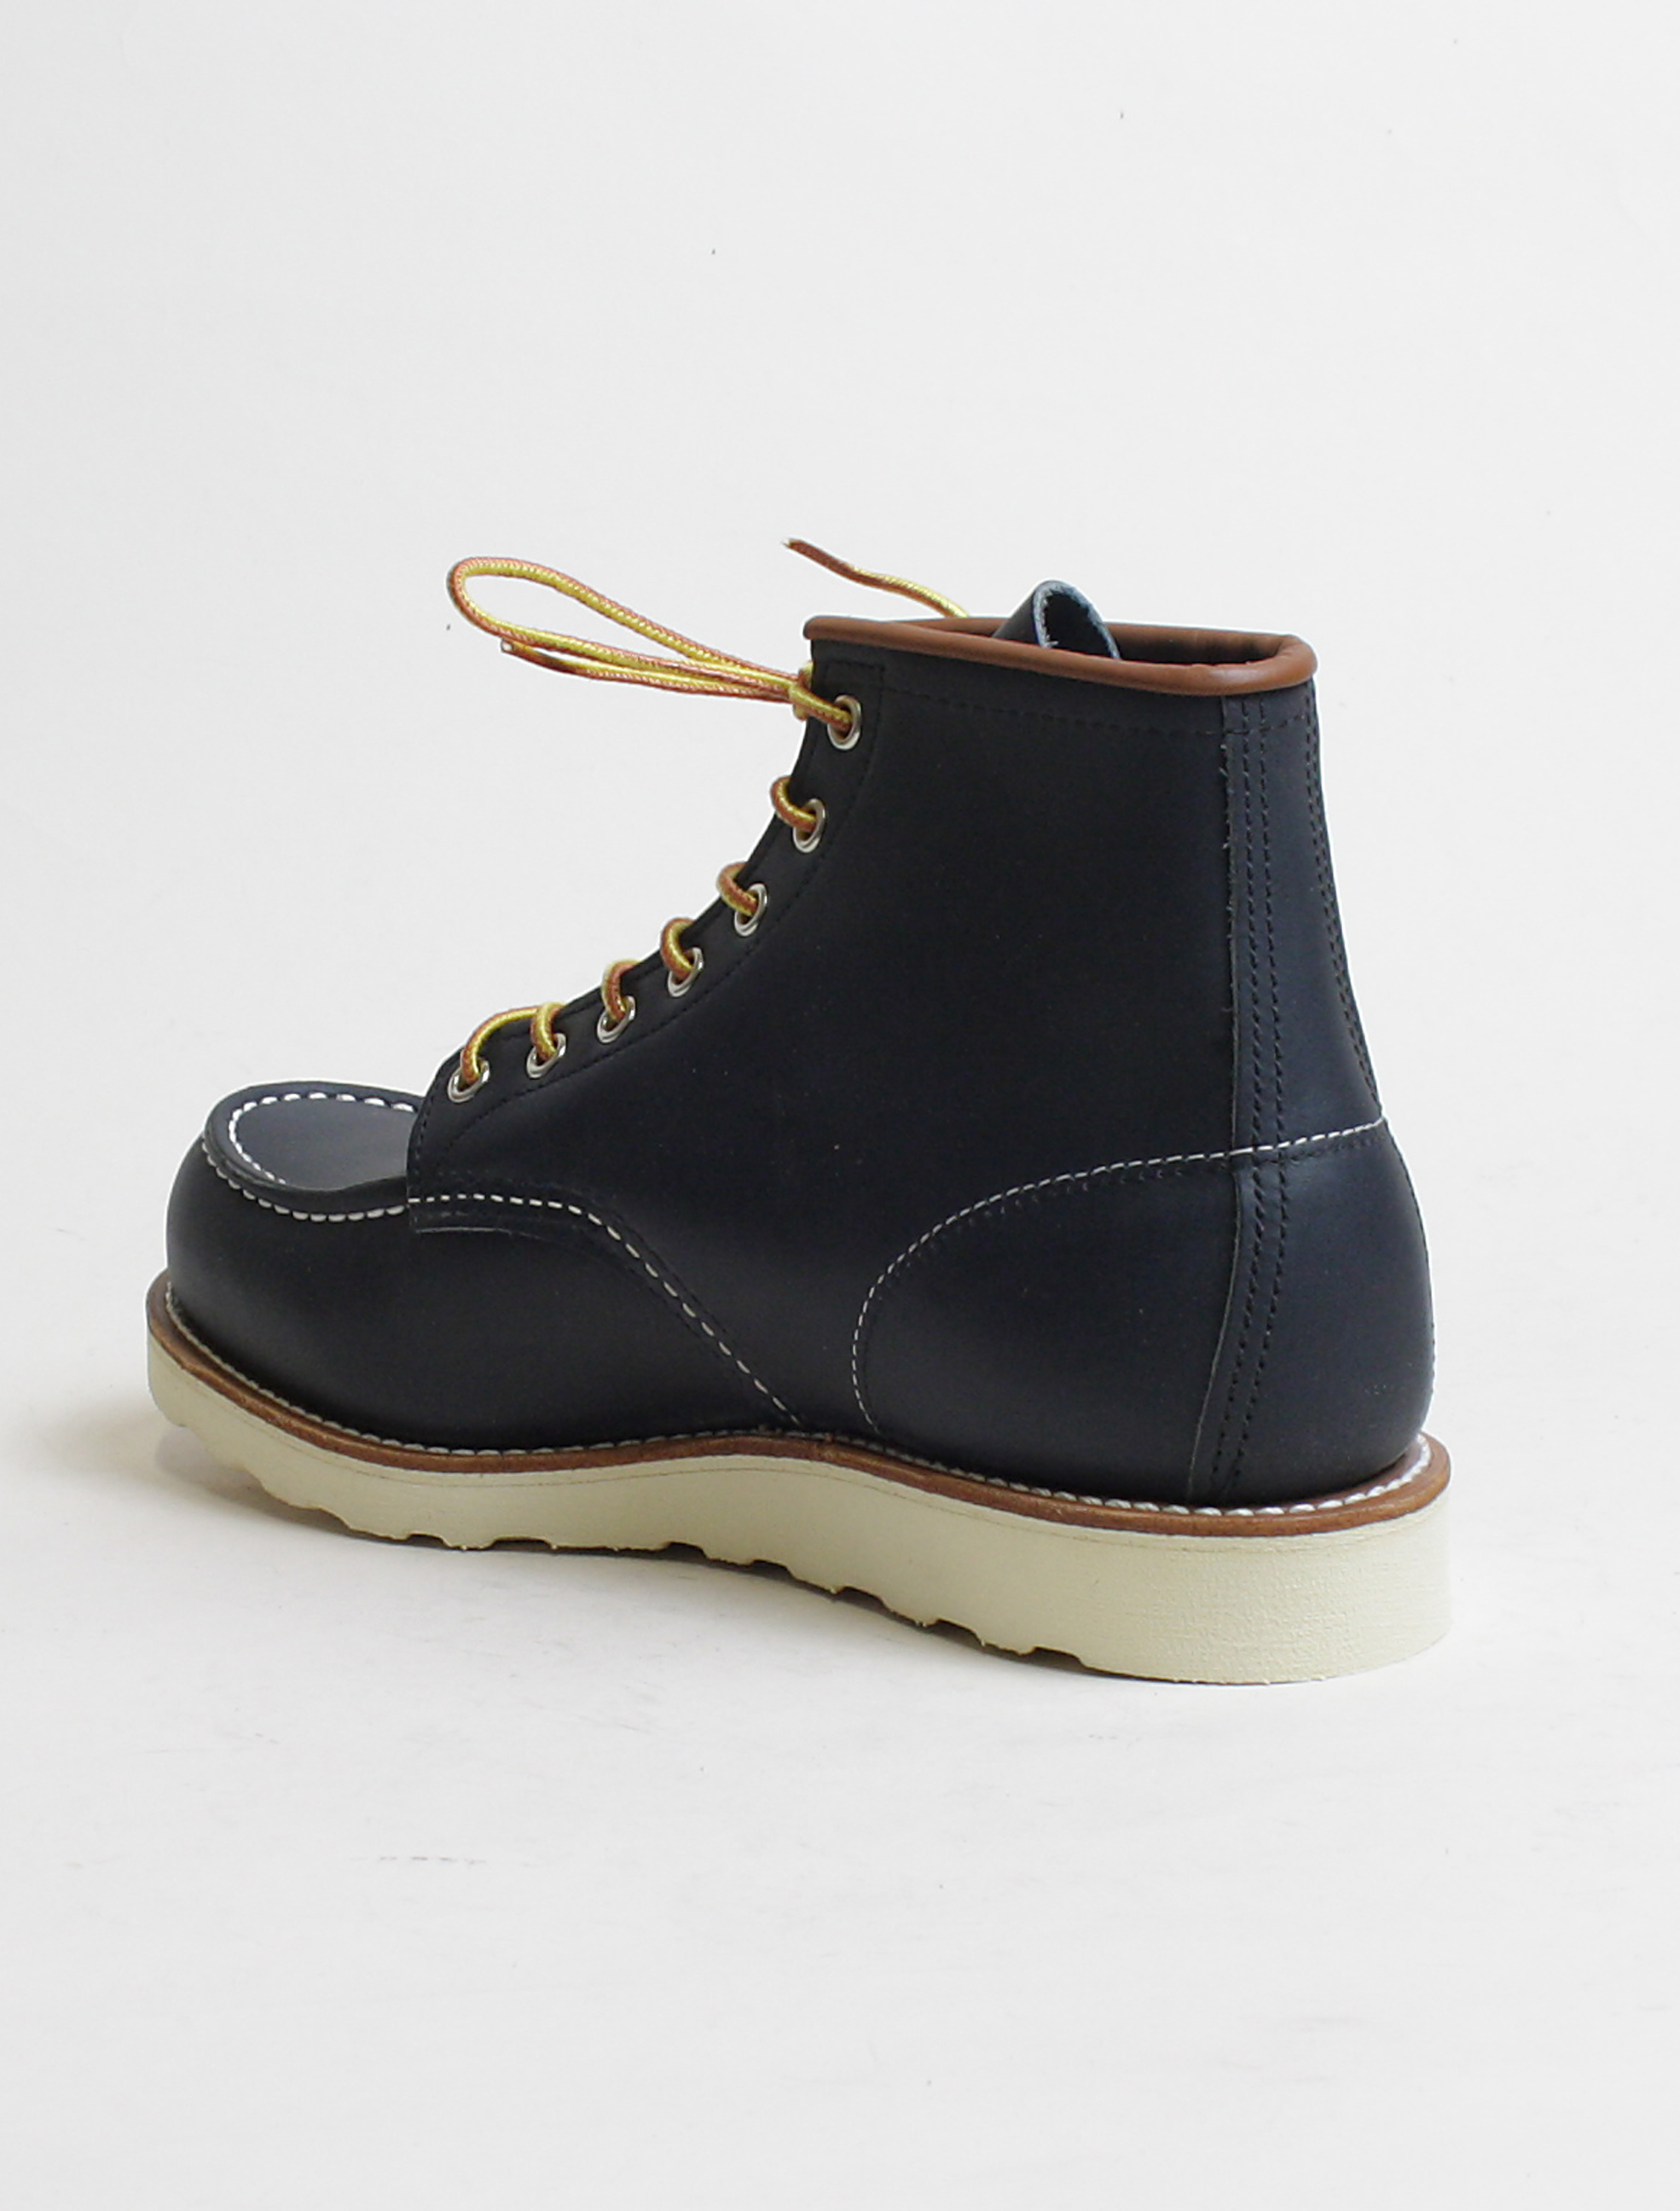 Red Wing 8859 Classic Moc Toe Navy dettaglio laterale